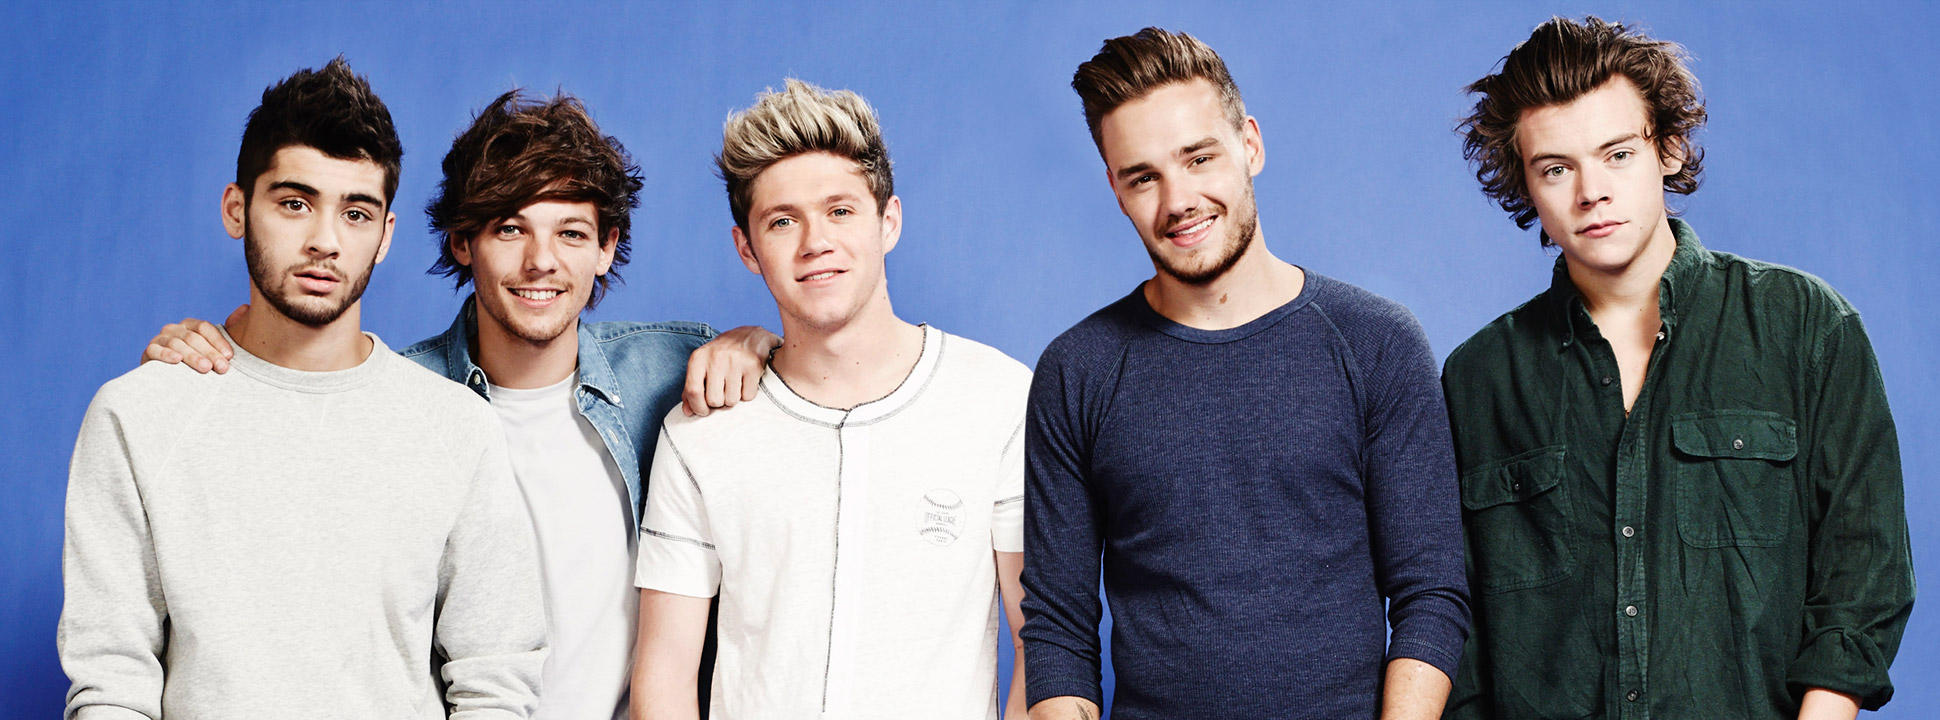 One Direction Wallpapers High Quality | Download Free